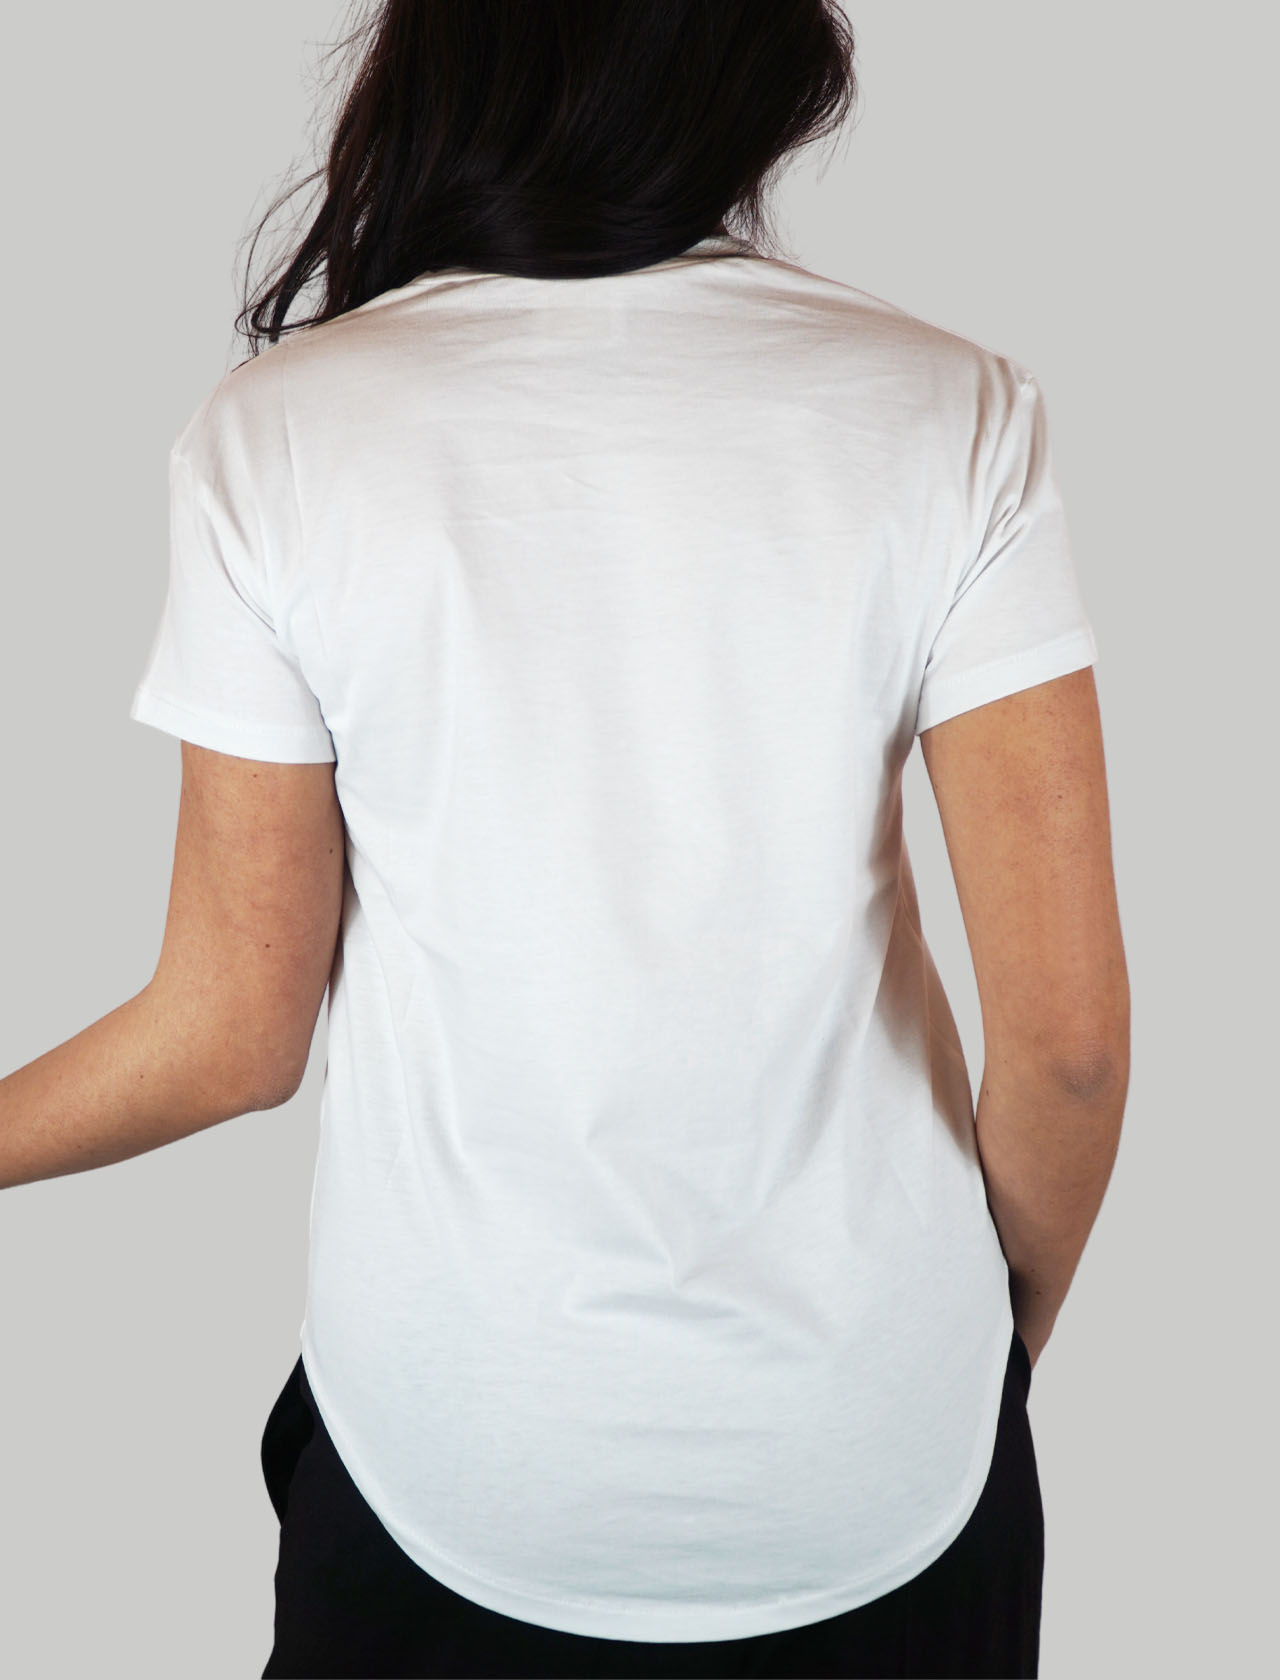 Women's Clothing White Cotton T-shirt You Are My Favorite with Gold Writing Mercì | Knitwear | M304PP100